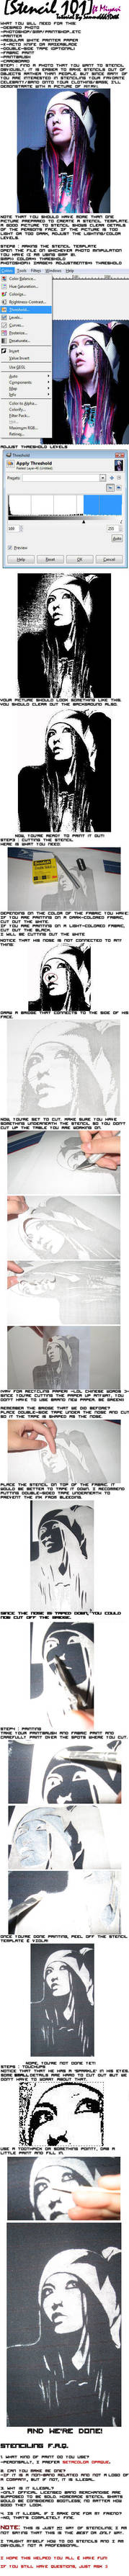 Stencil 101 Tutorial ft Miyavi